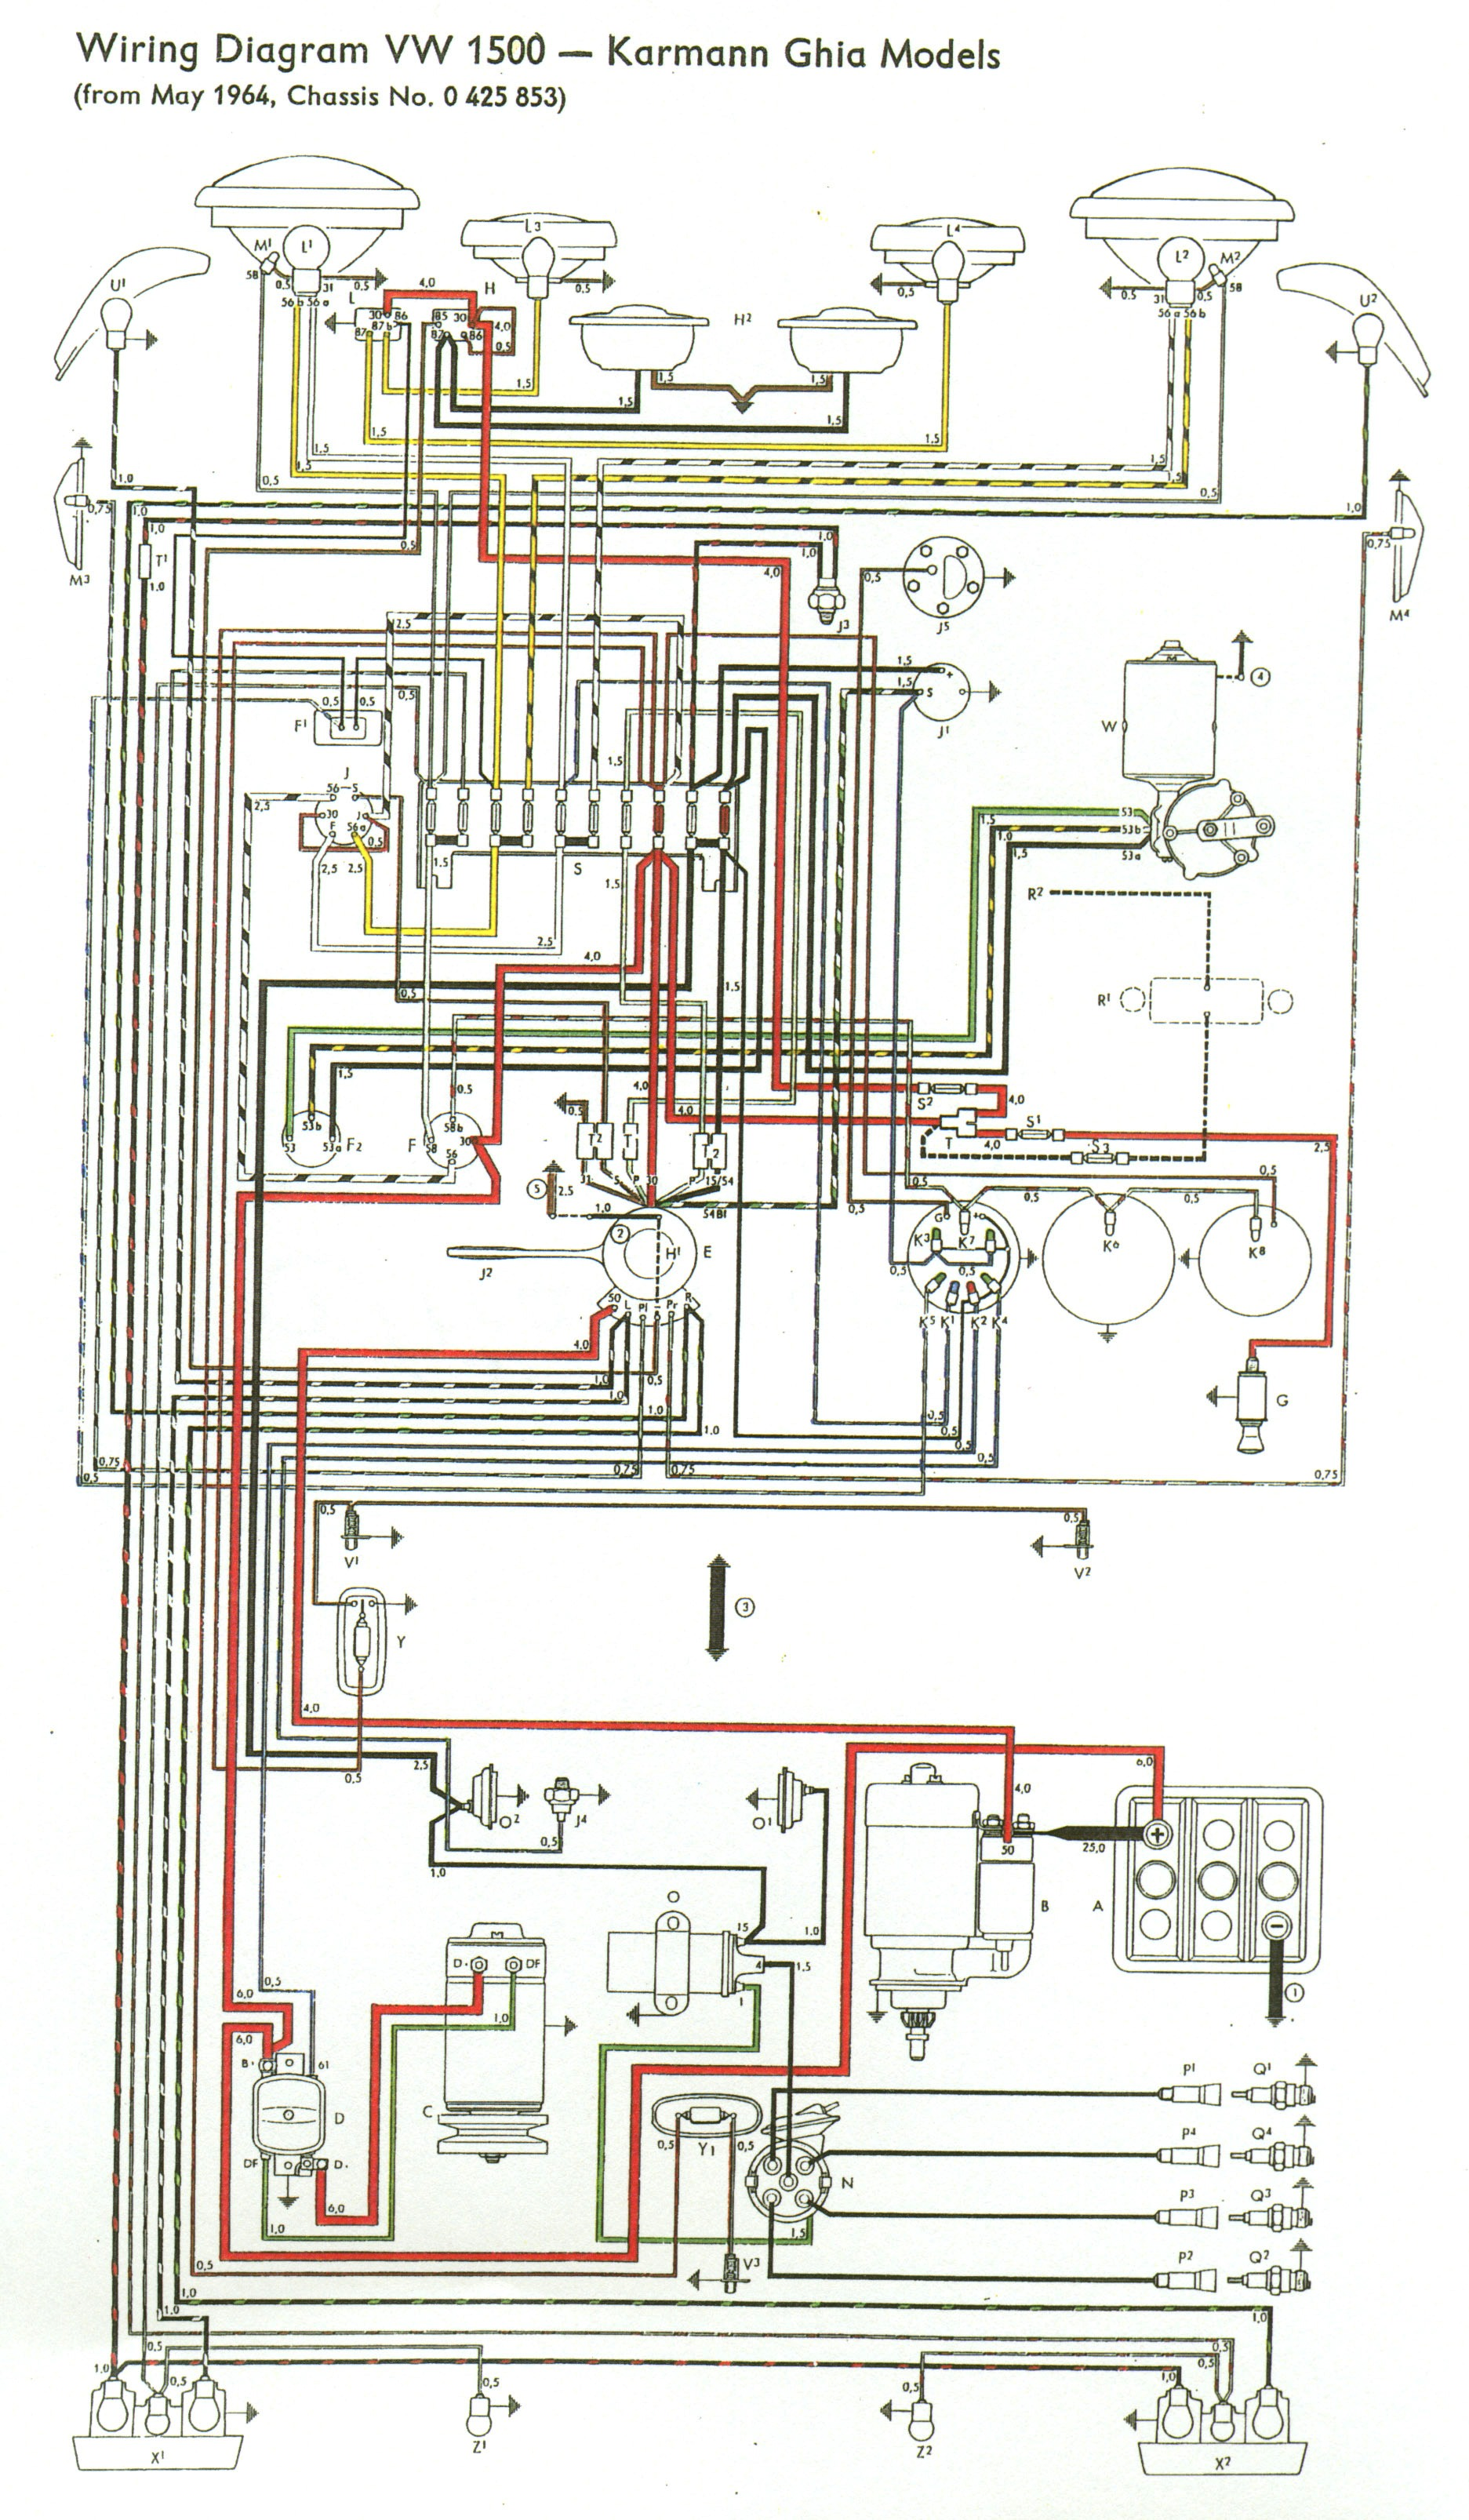 1965to66front wiring diagram for 1971 vw bus the wiring diagram readingrat net 1971 karmann ghia wiring diagram at couponss.co